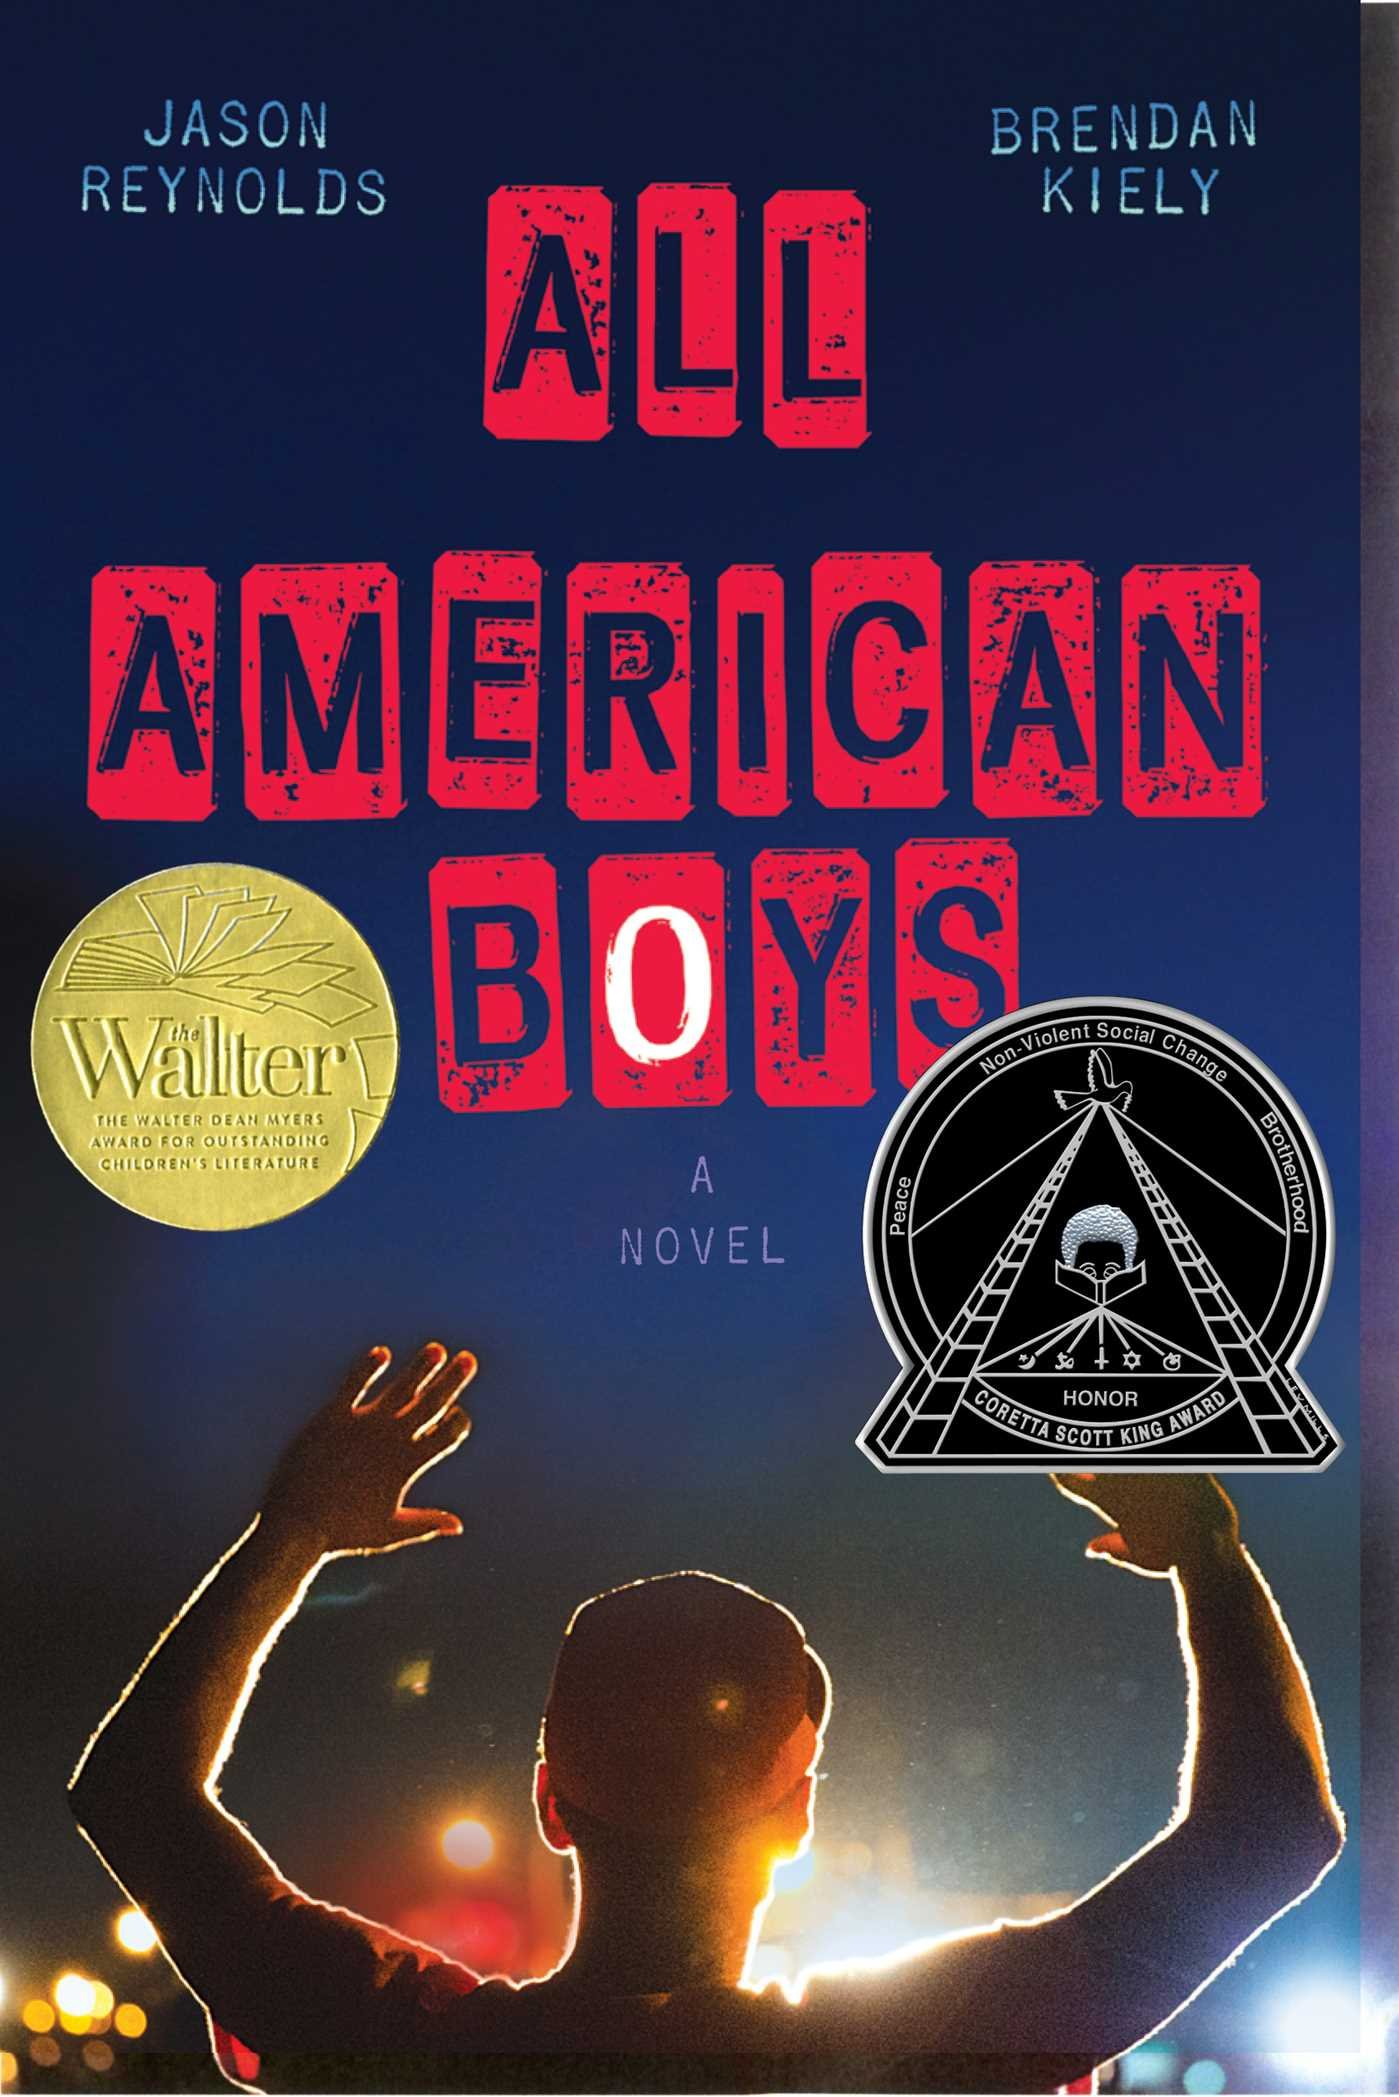 Amazon.com: All American Boys (9781481463331): Reynolds, Jason, Kiely,  Brendan: Books